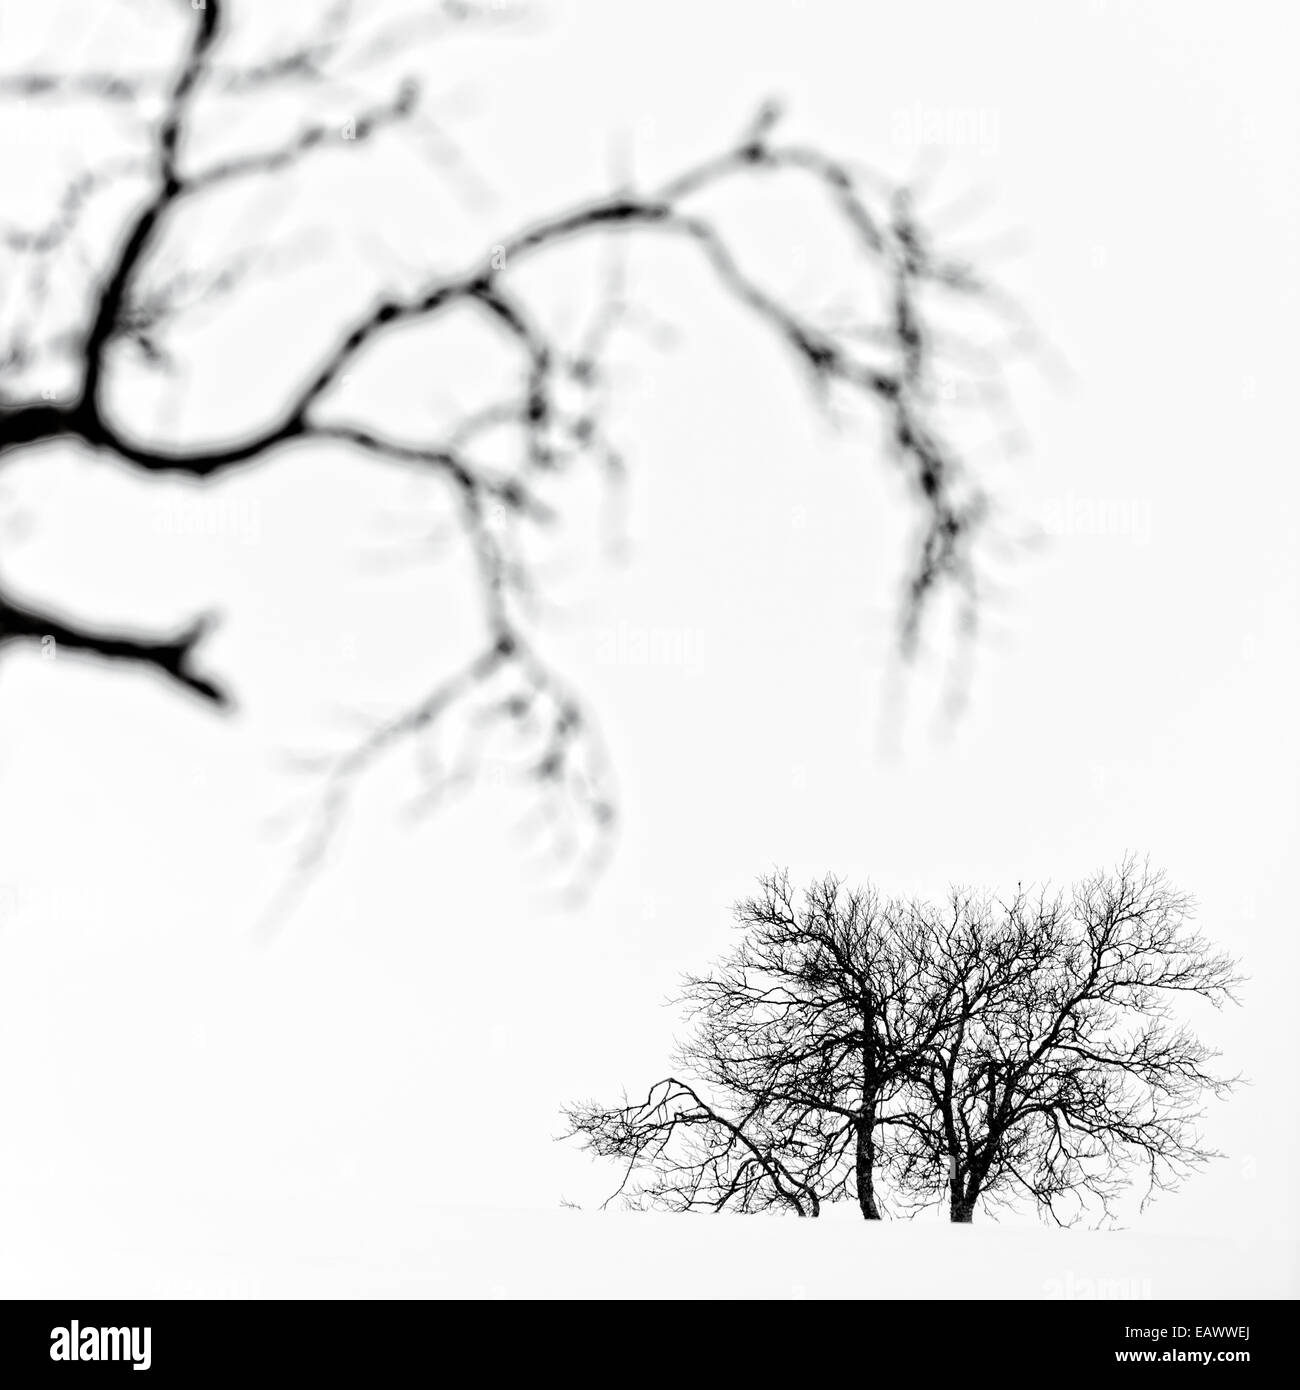 Blurred tree branches against a cloudy sky. - Stock Image